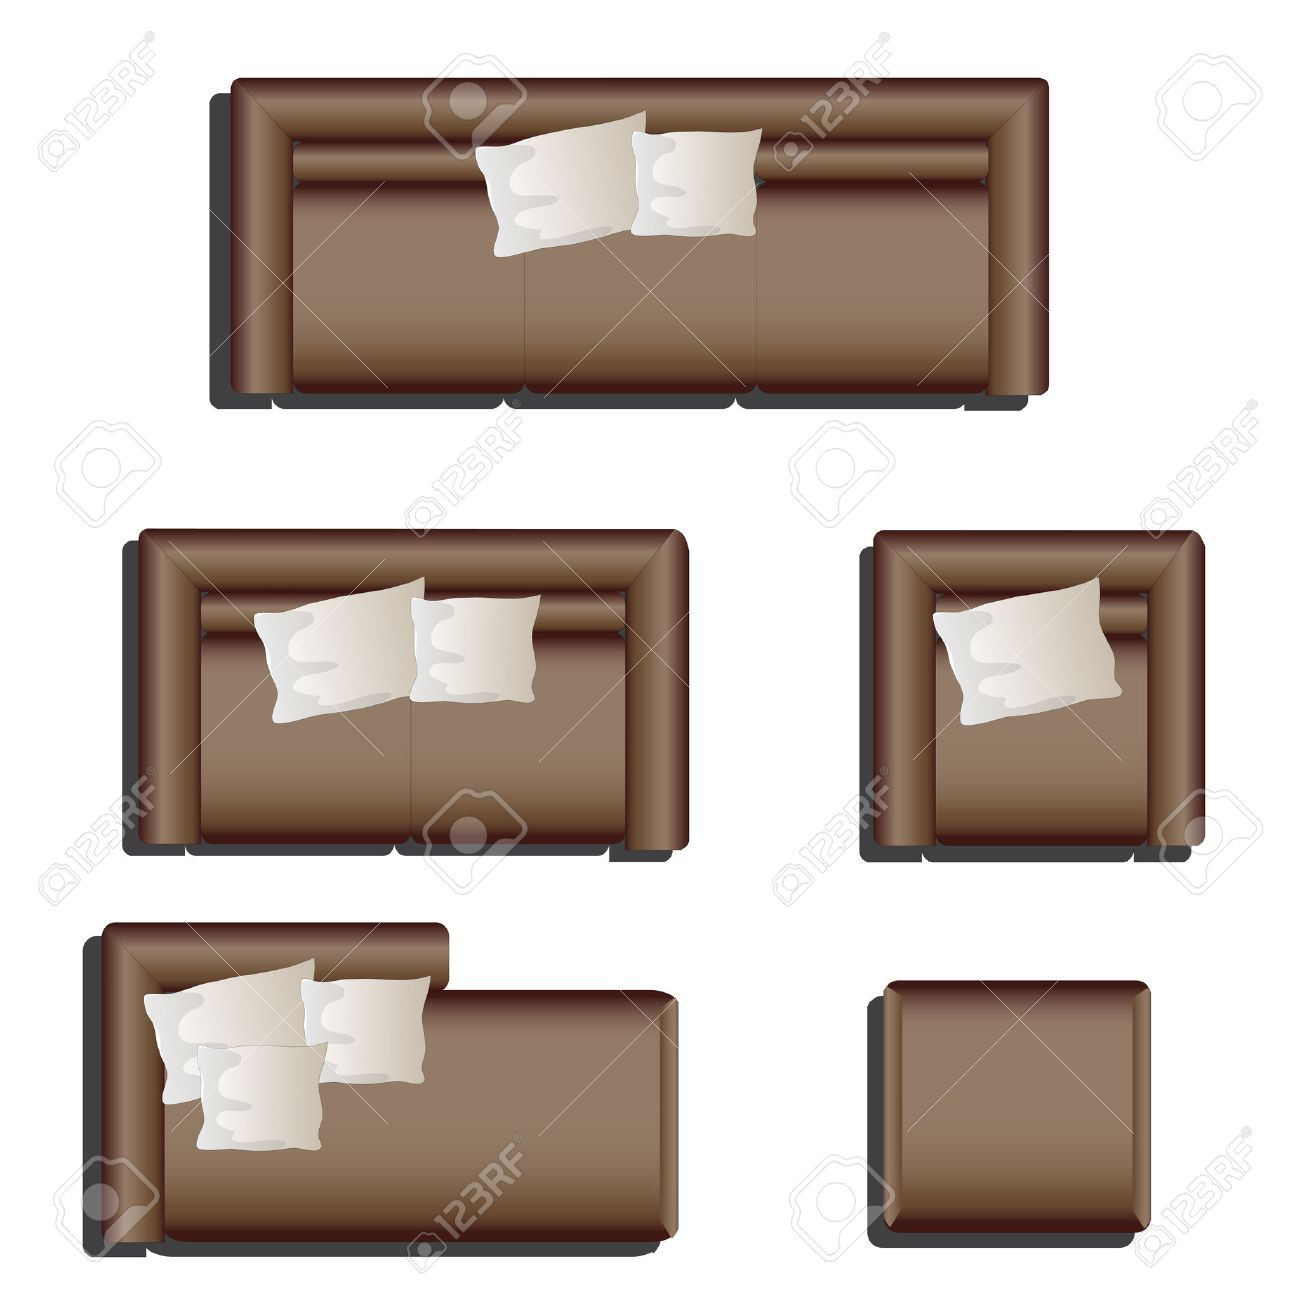 Furniture top view images - Furniture Top View Set 28 For Interior Vector Illustration Brown Sofa Stock Vector